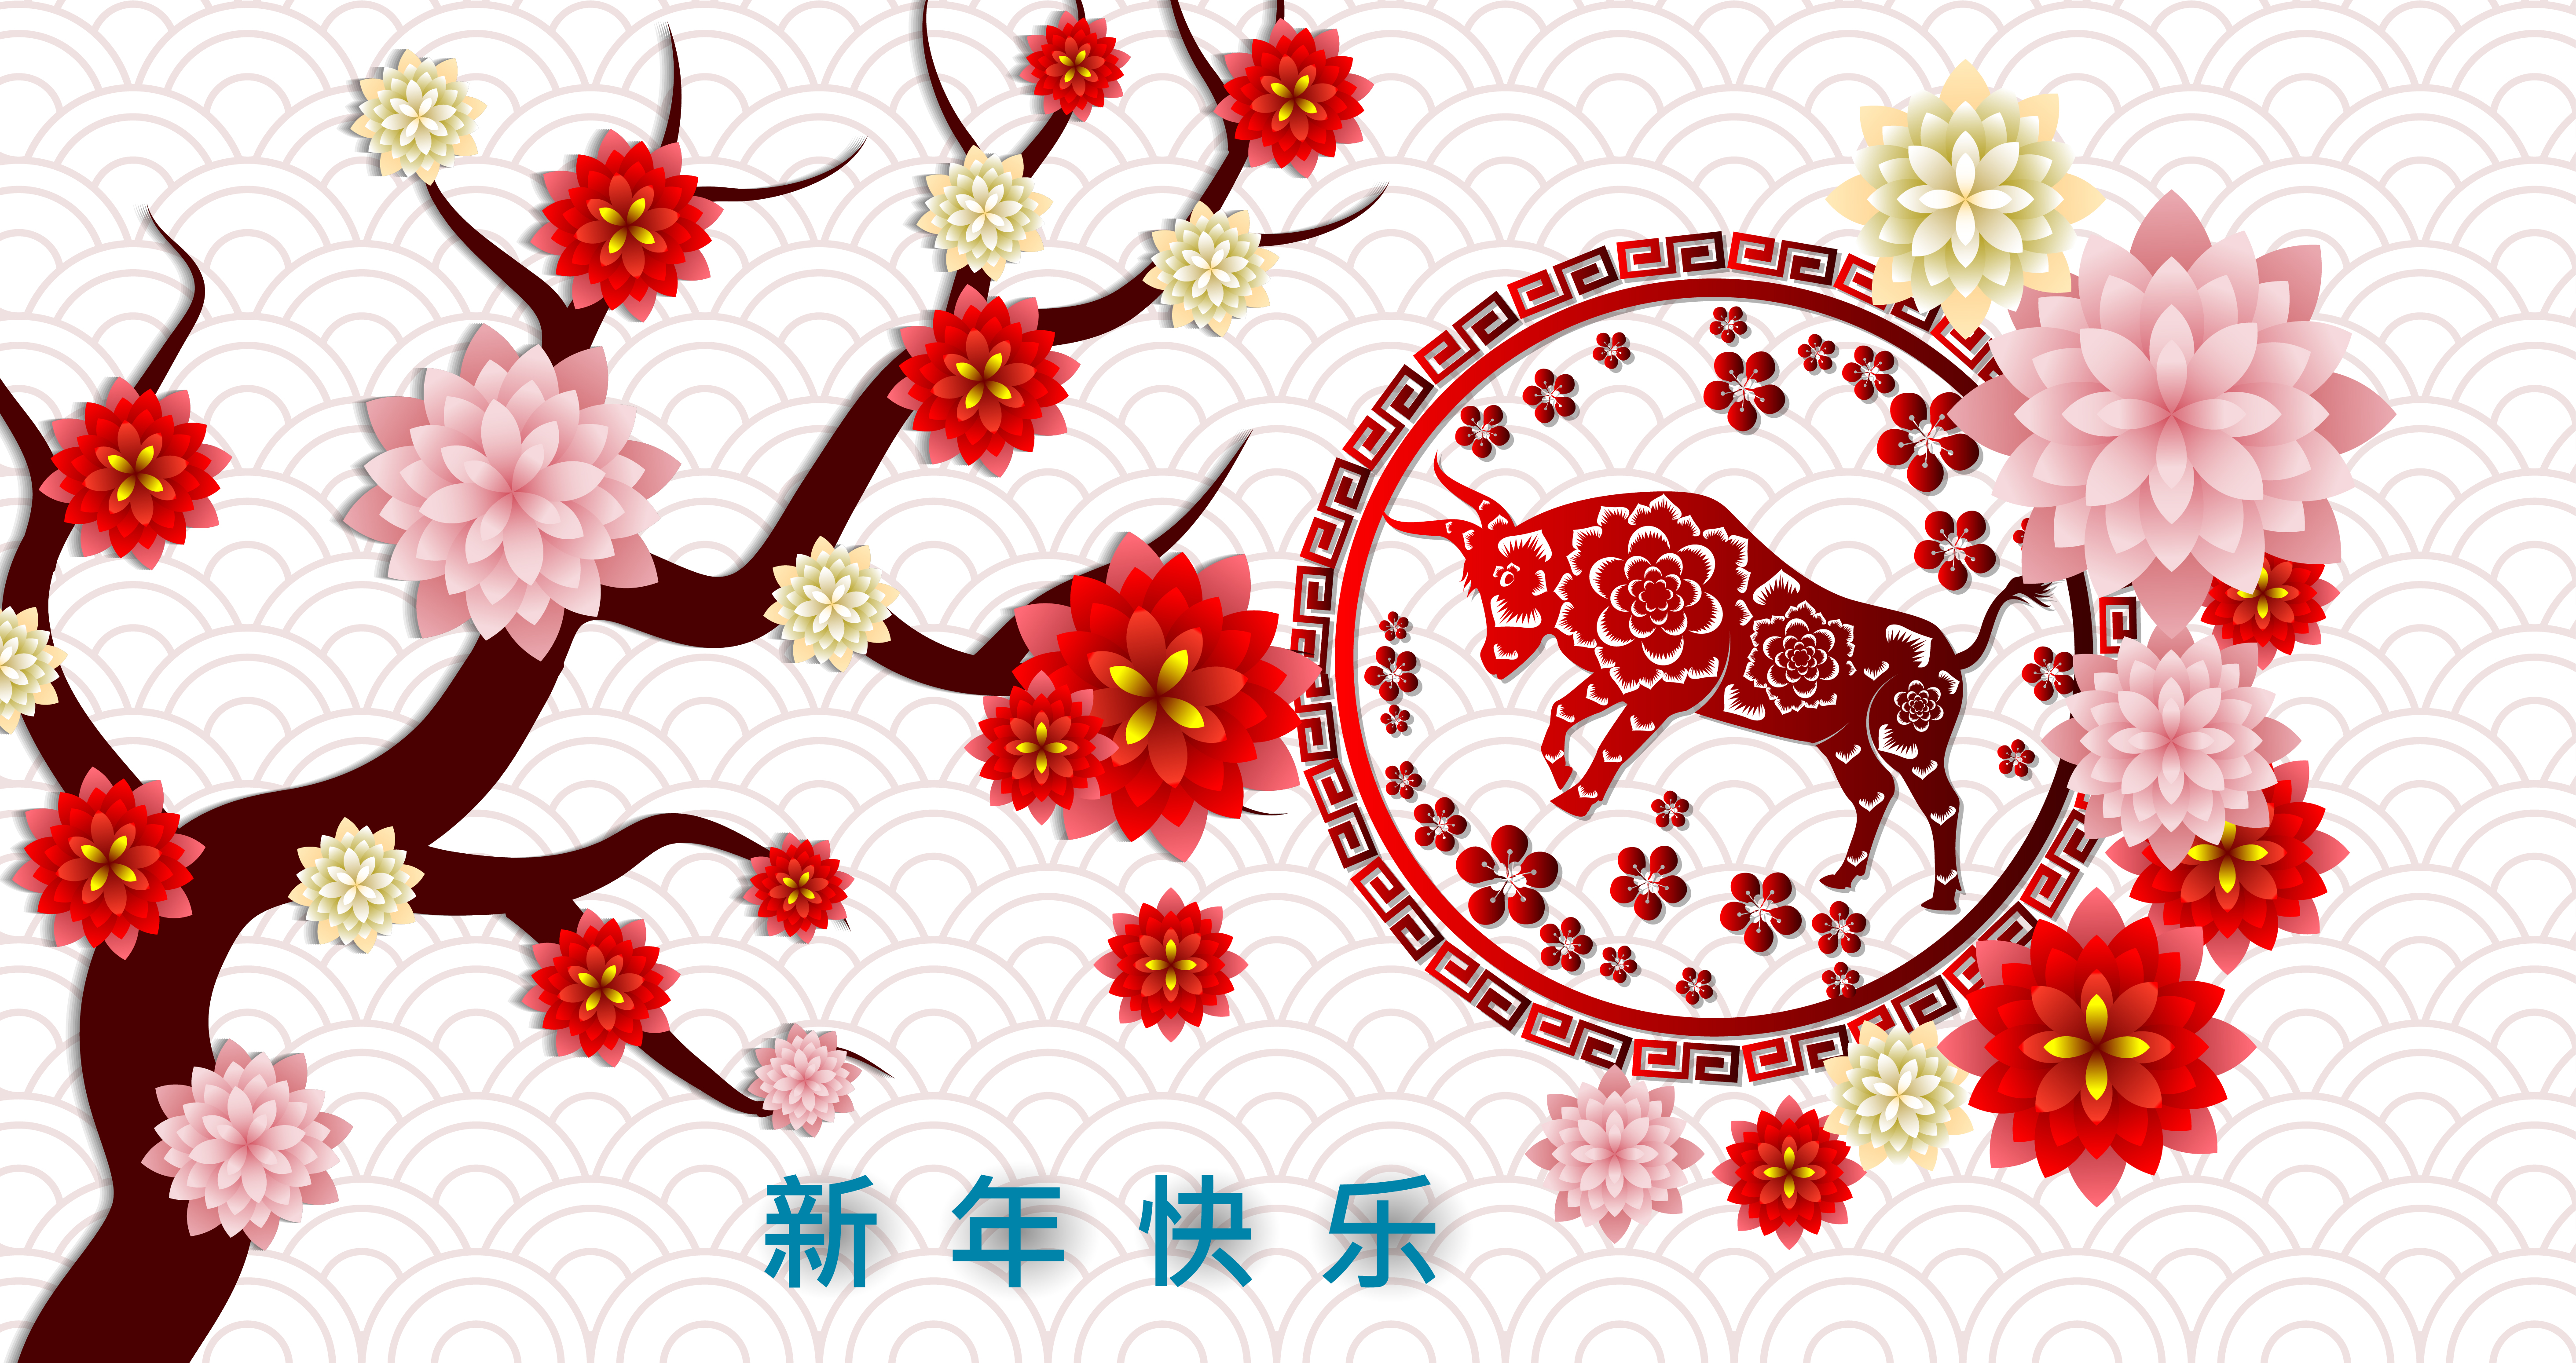 Blossom Happy Chinese New Year 2021 Poster - Download Free ...